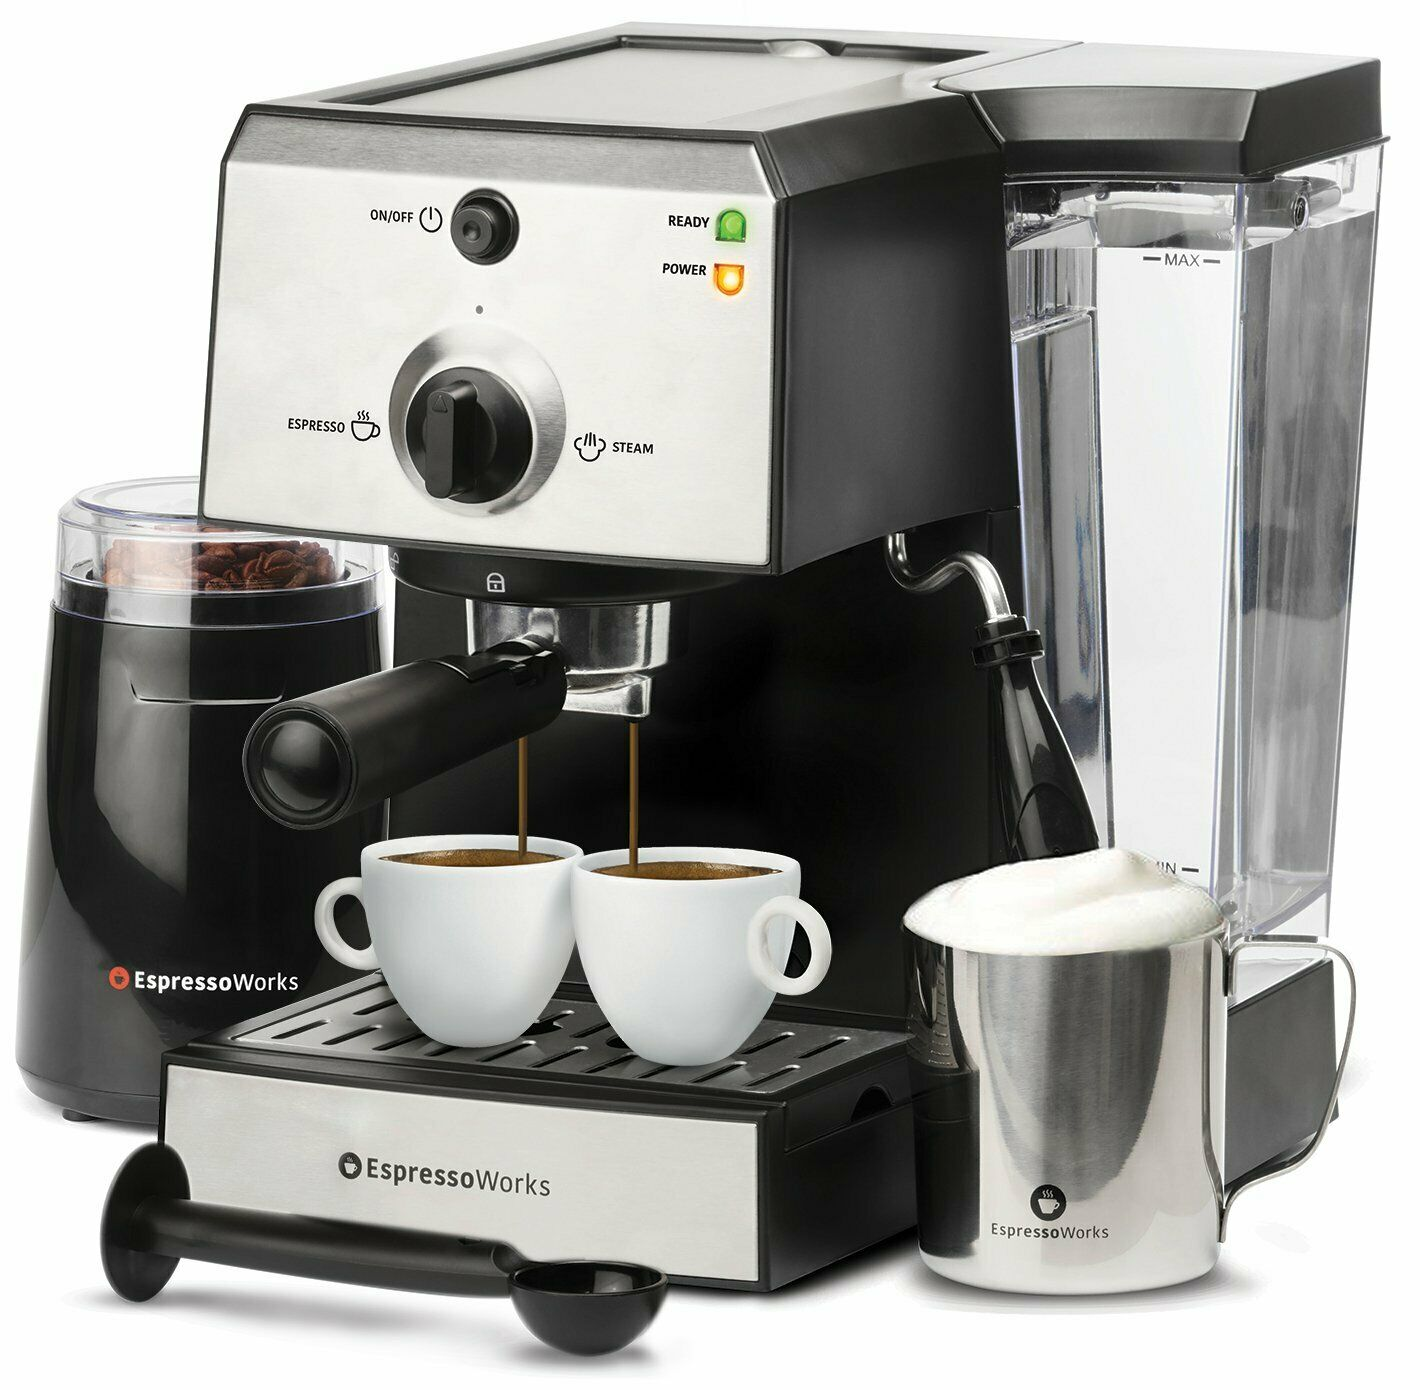 All In 1 Espresso Machine Cappuccino Coffee Maker With Grinder And Milk Frother